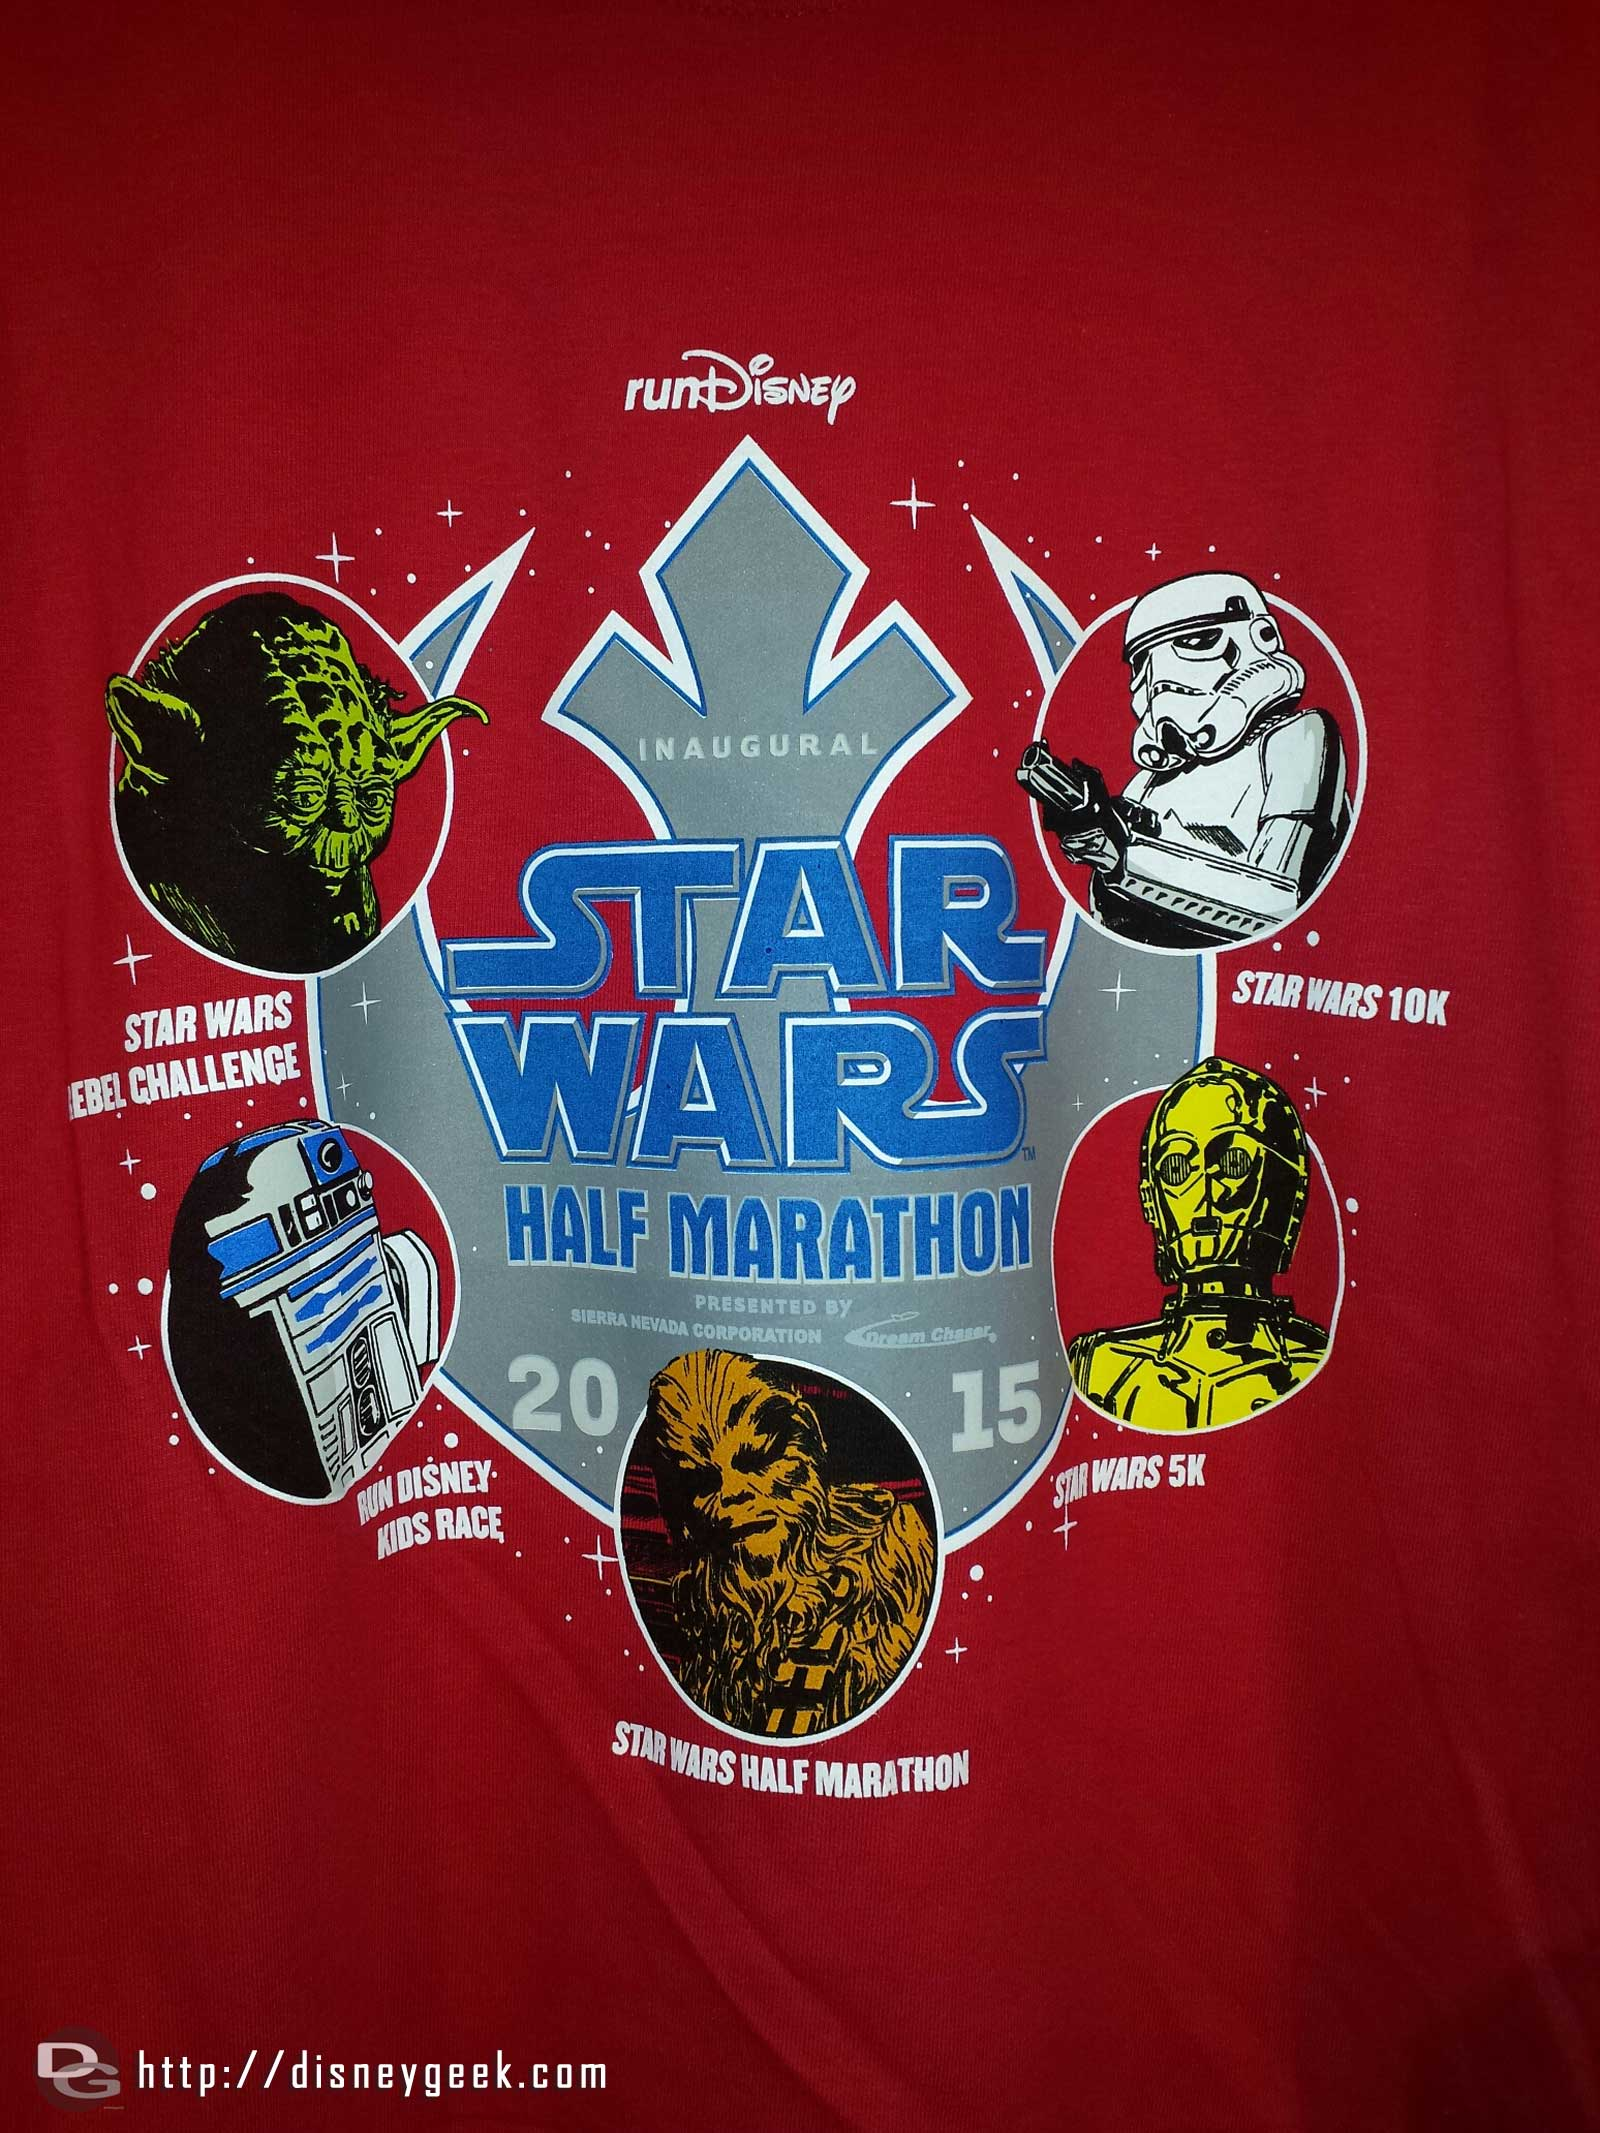 A shirt design for the Star Wars half marathon weekend featuring all the races #Disneyland